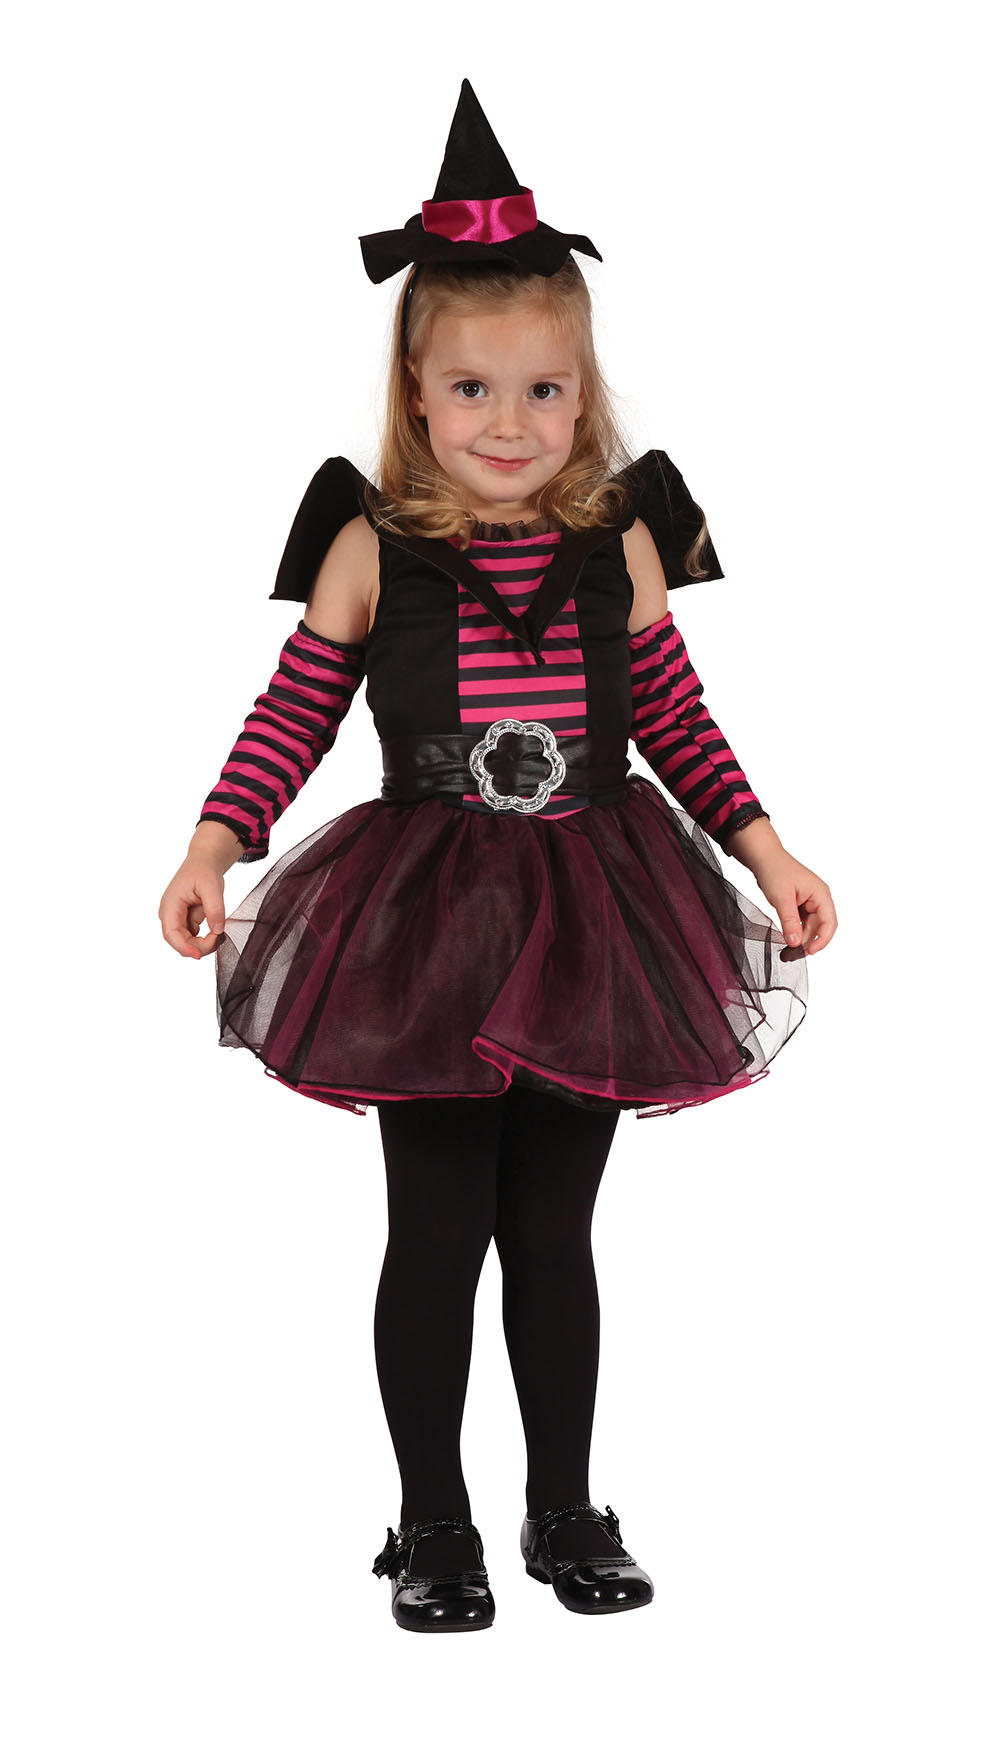 Cute Witch Toddler Costume | All Halloween | Mega Fancy Dress